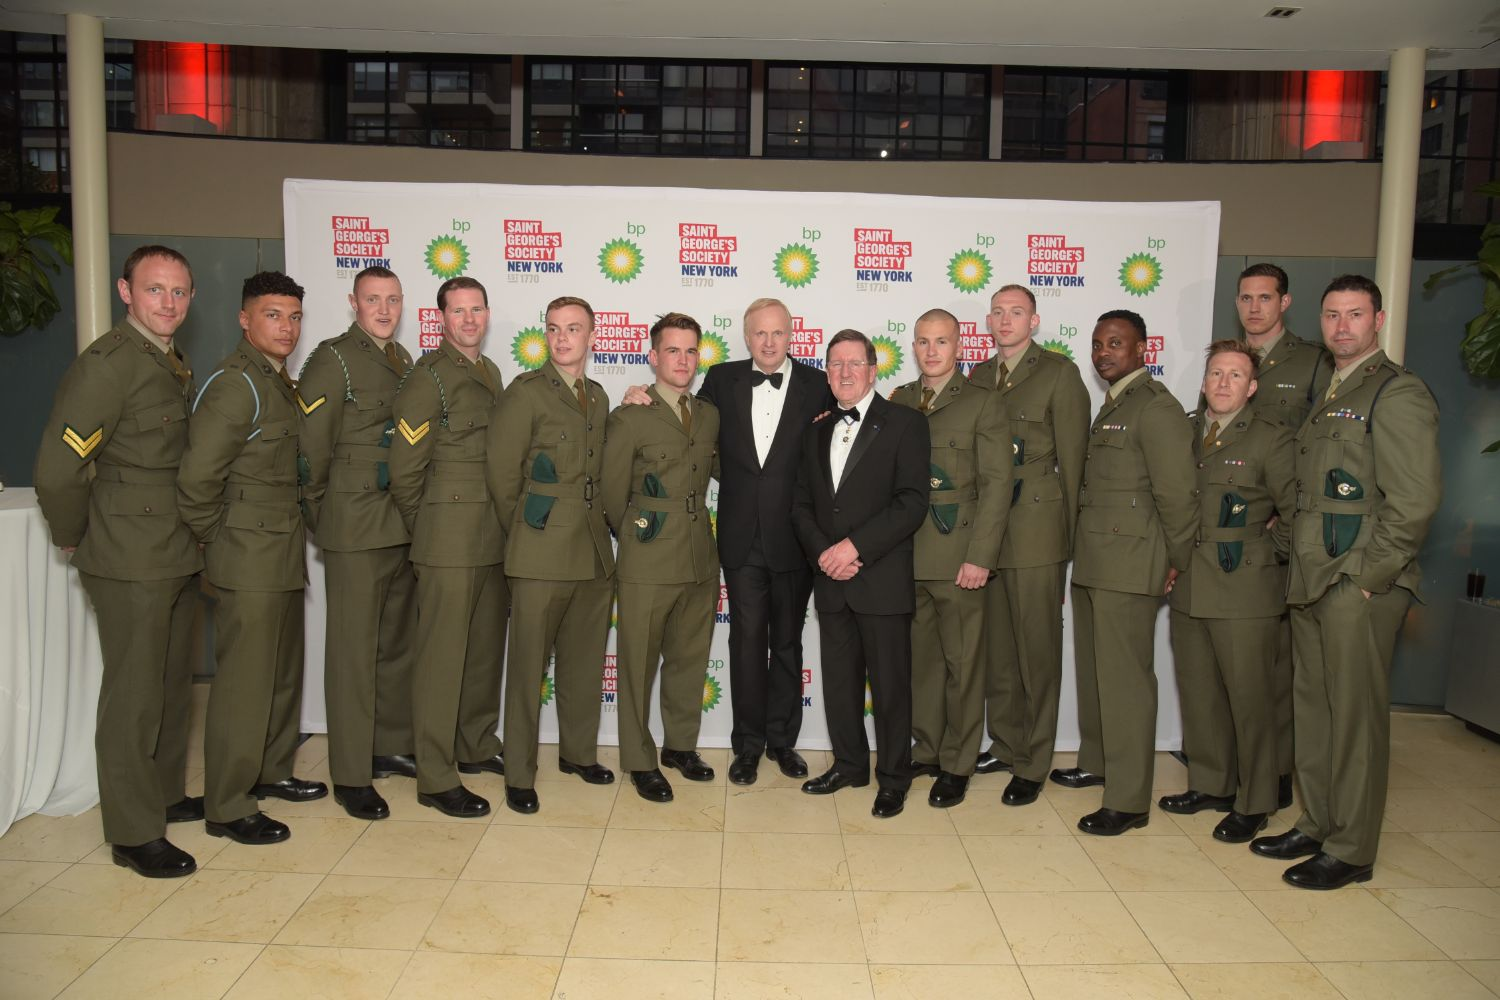 Bob Dudley and the Rt Hon Lord George Robertson pictured with the Royal Marines